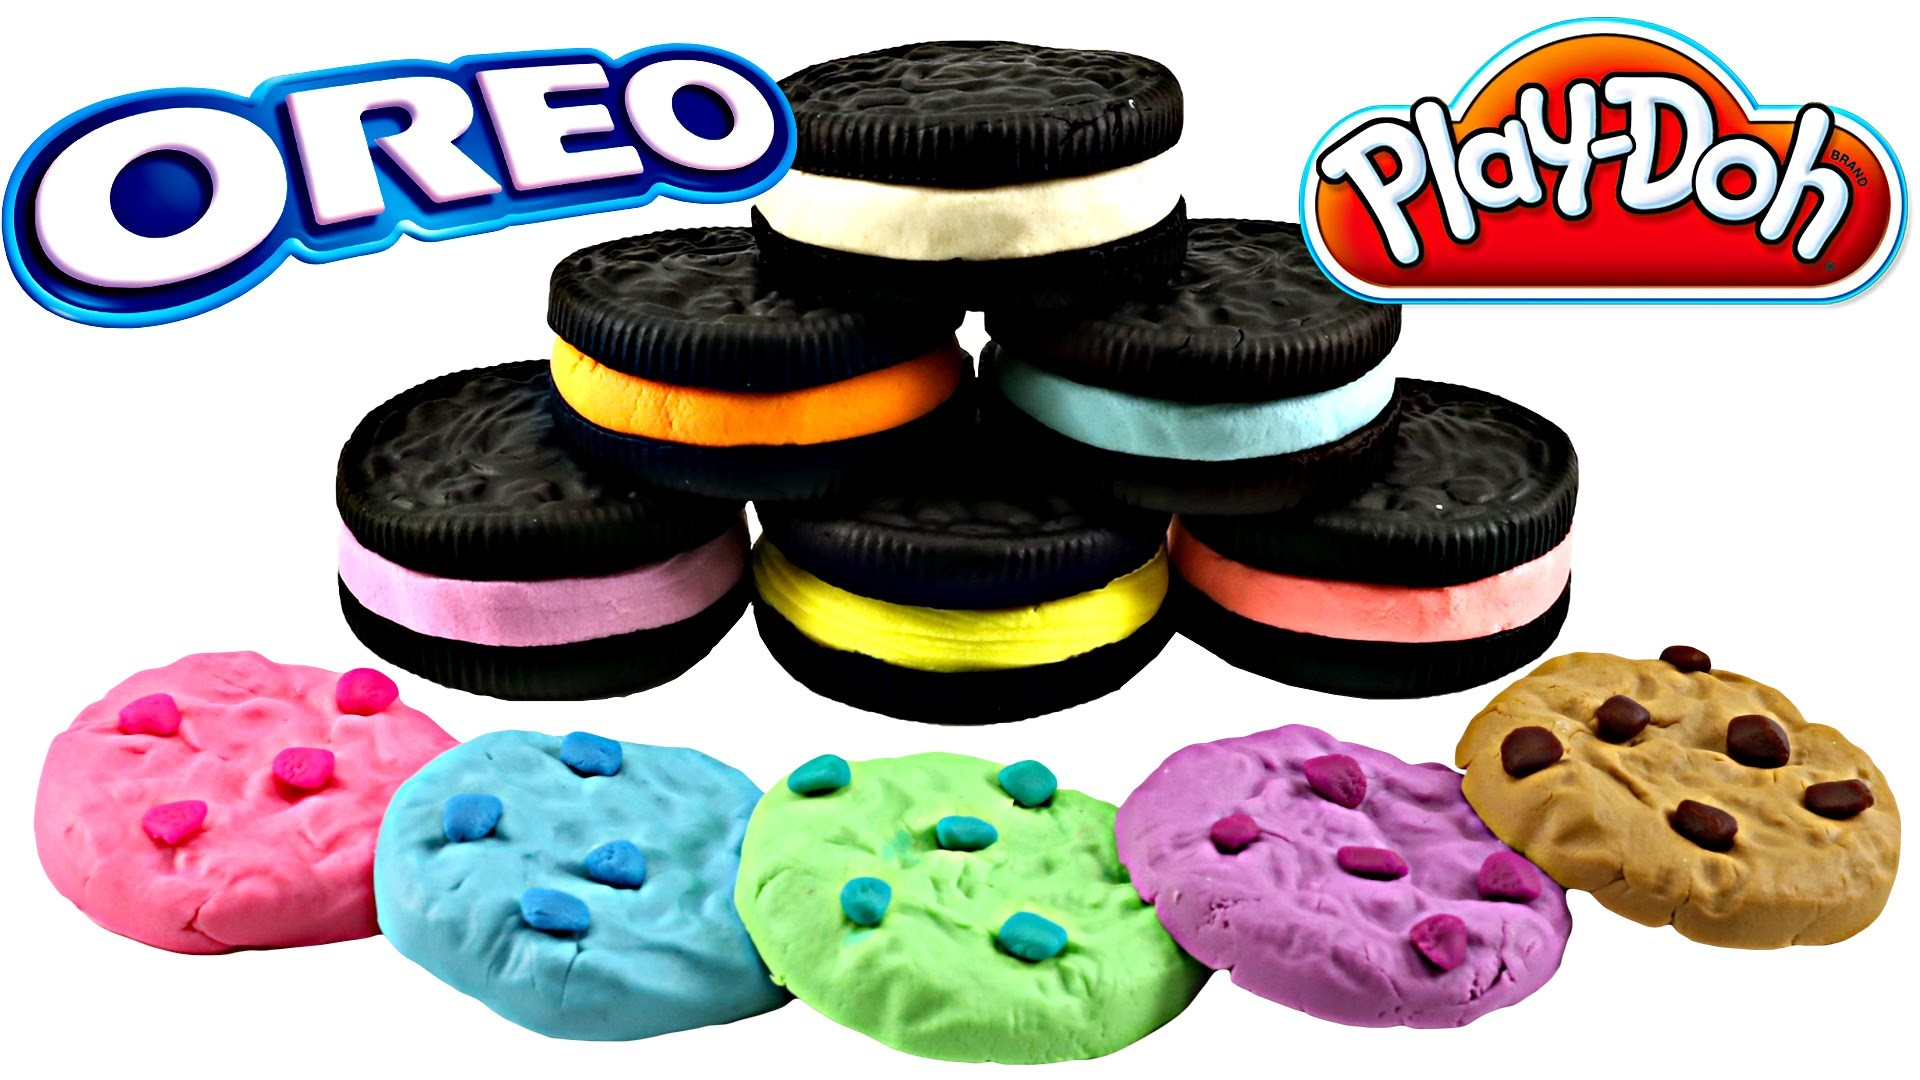 Play doh Cookie Makin Station OREO Chips Ahoy Rainbow Cookies |  Sweet Treats Playdough